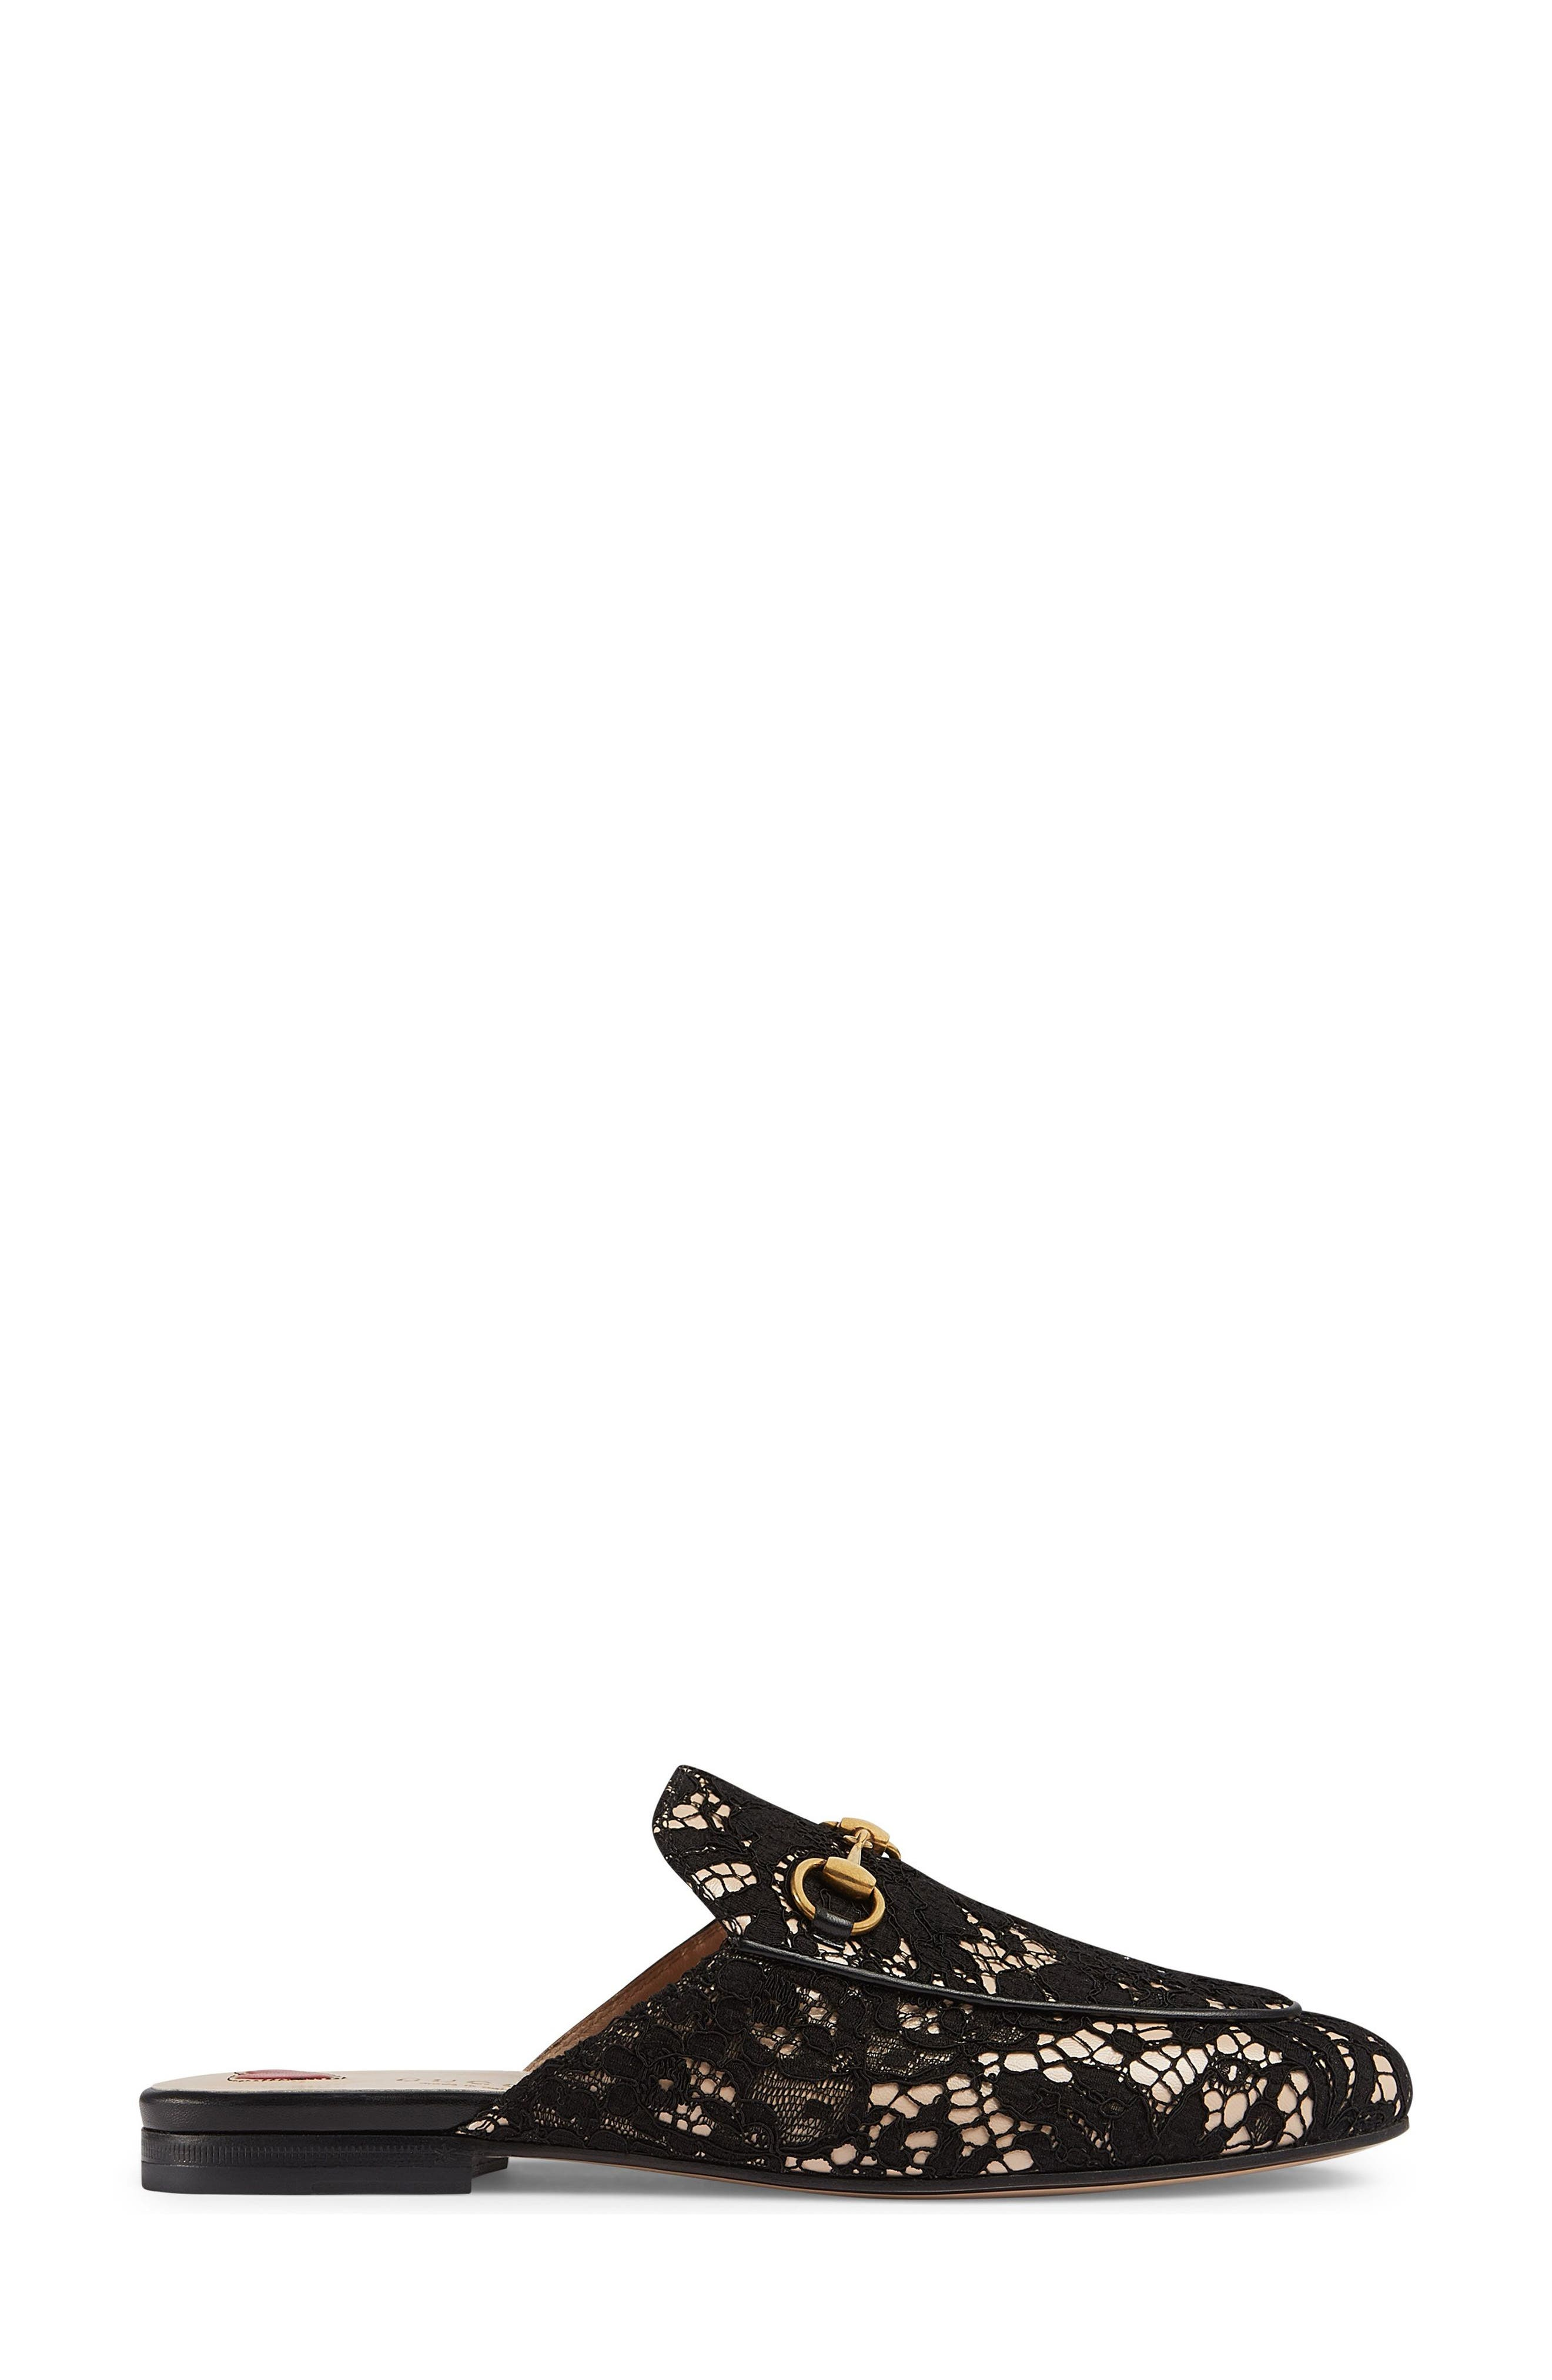 Gucci Lace Princetown Loafer Mule (Women)